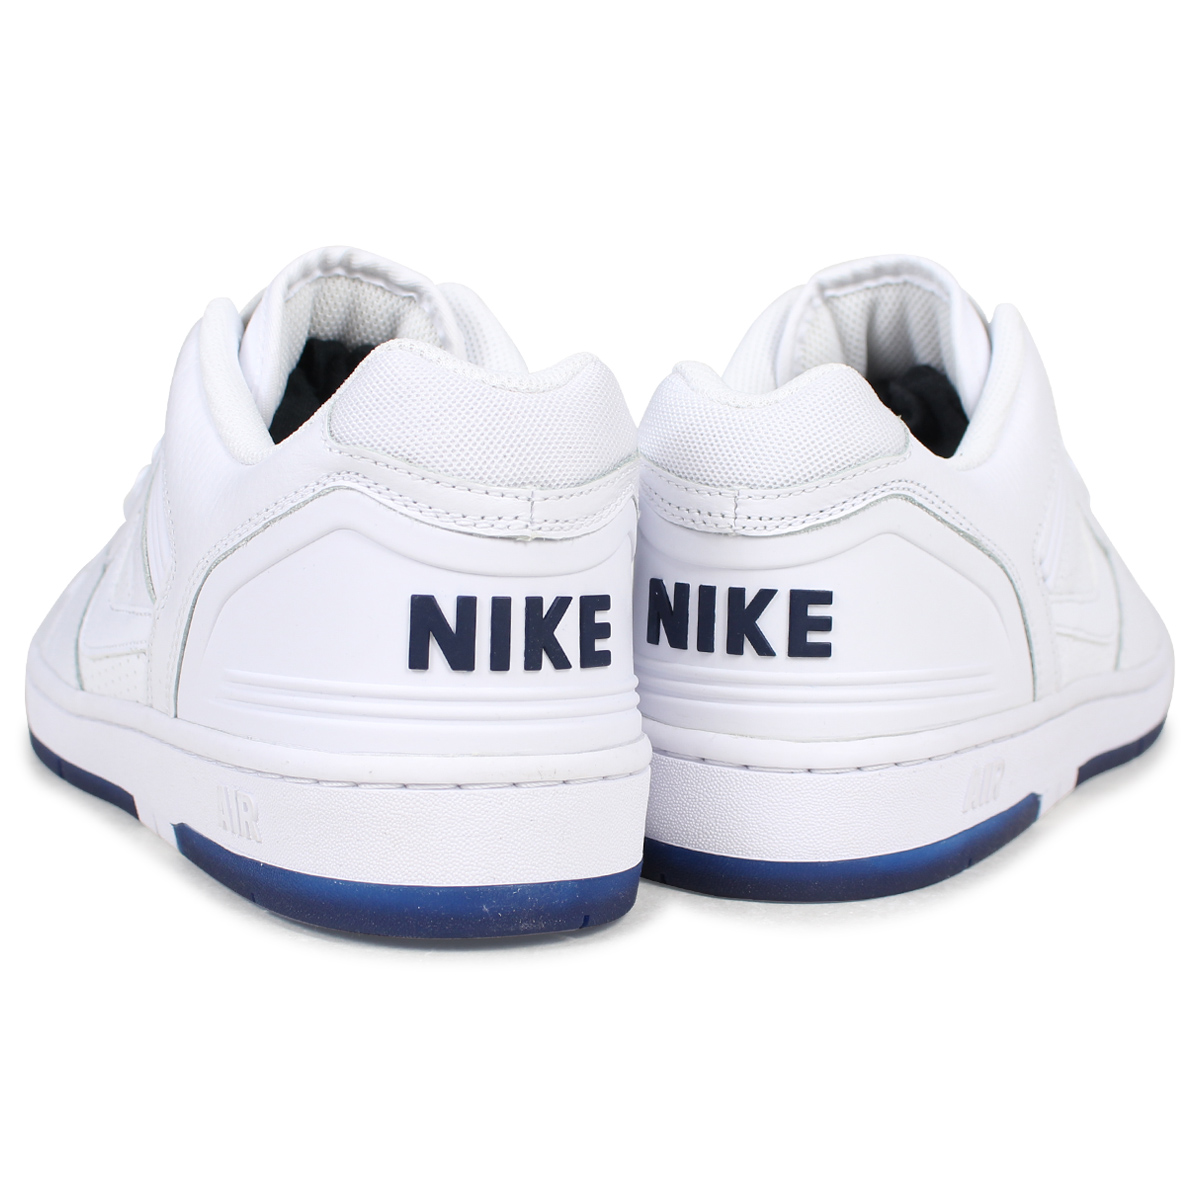 the best attitude 435a2 d10d6 ... NIKE AIR FORCE 2 LOW KEVIN BRADLEY Nike SB air force 2 sneakers men white  AO0298 ...